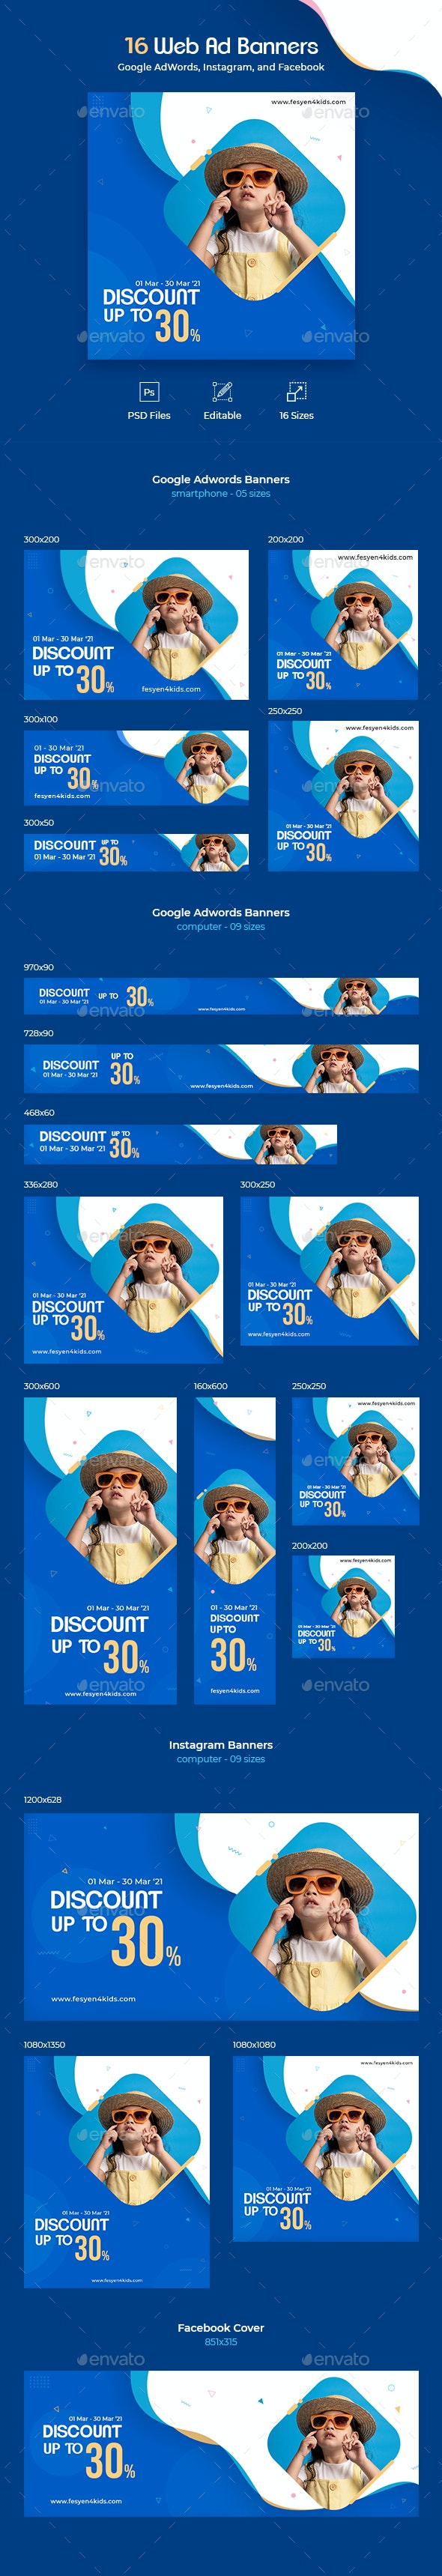 16 Web Ad Banners - Banners & Ads Web Elements